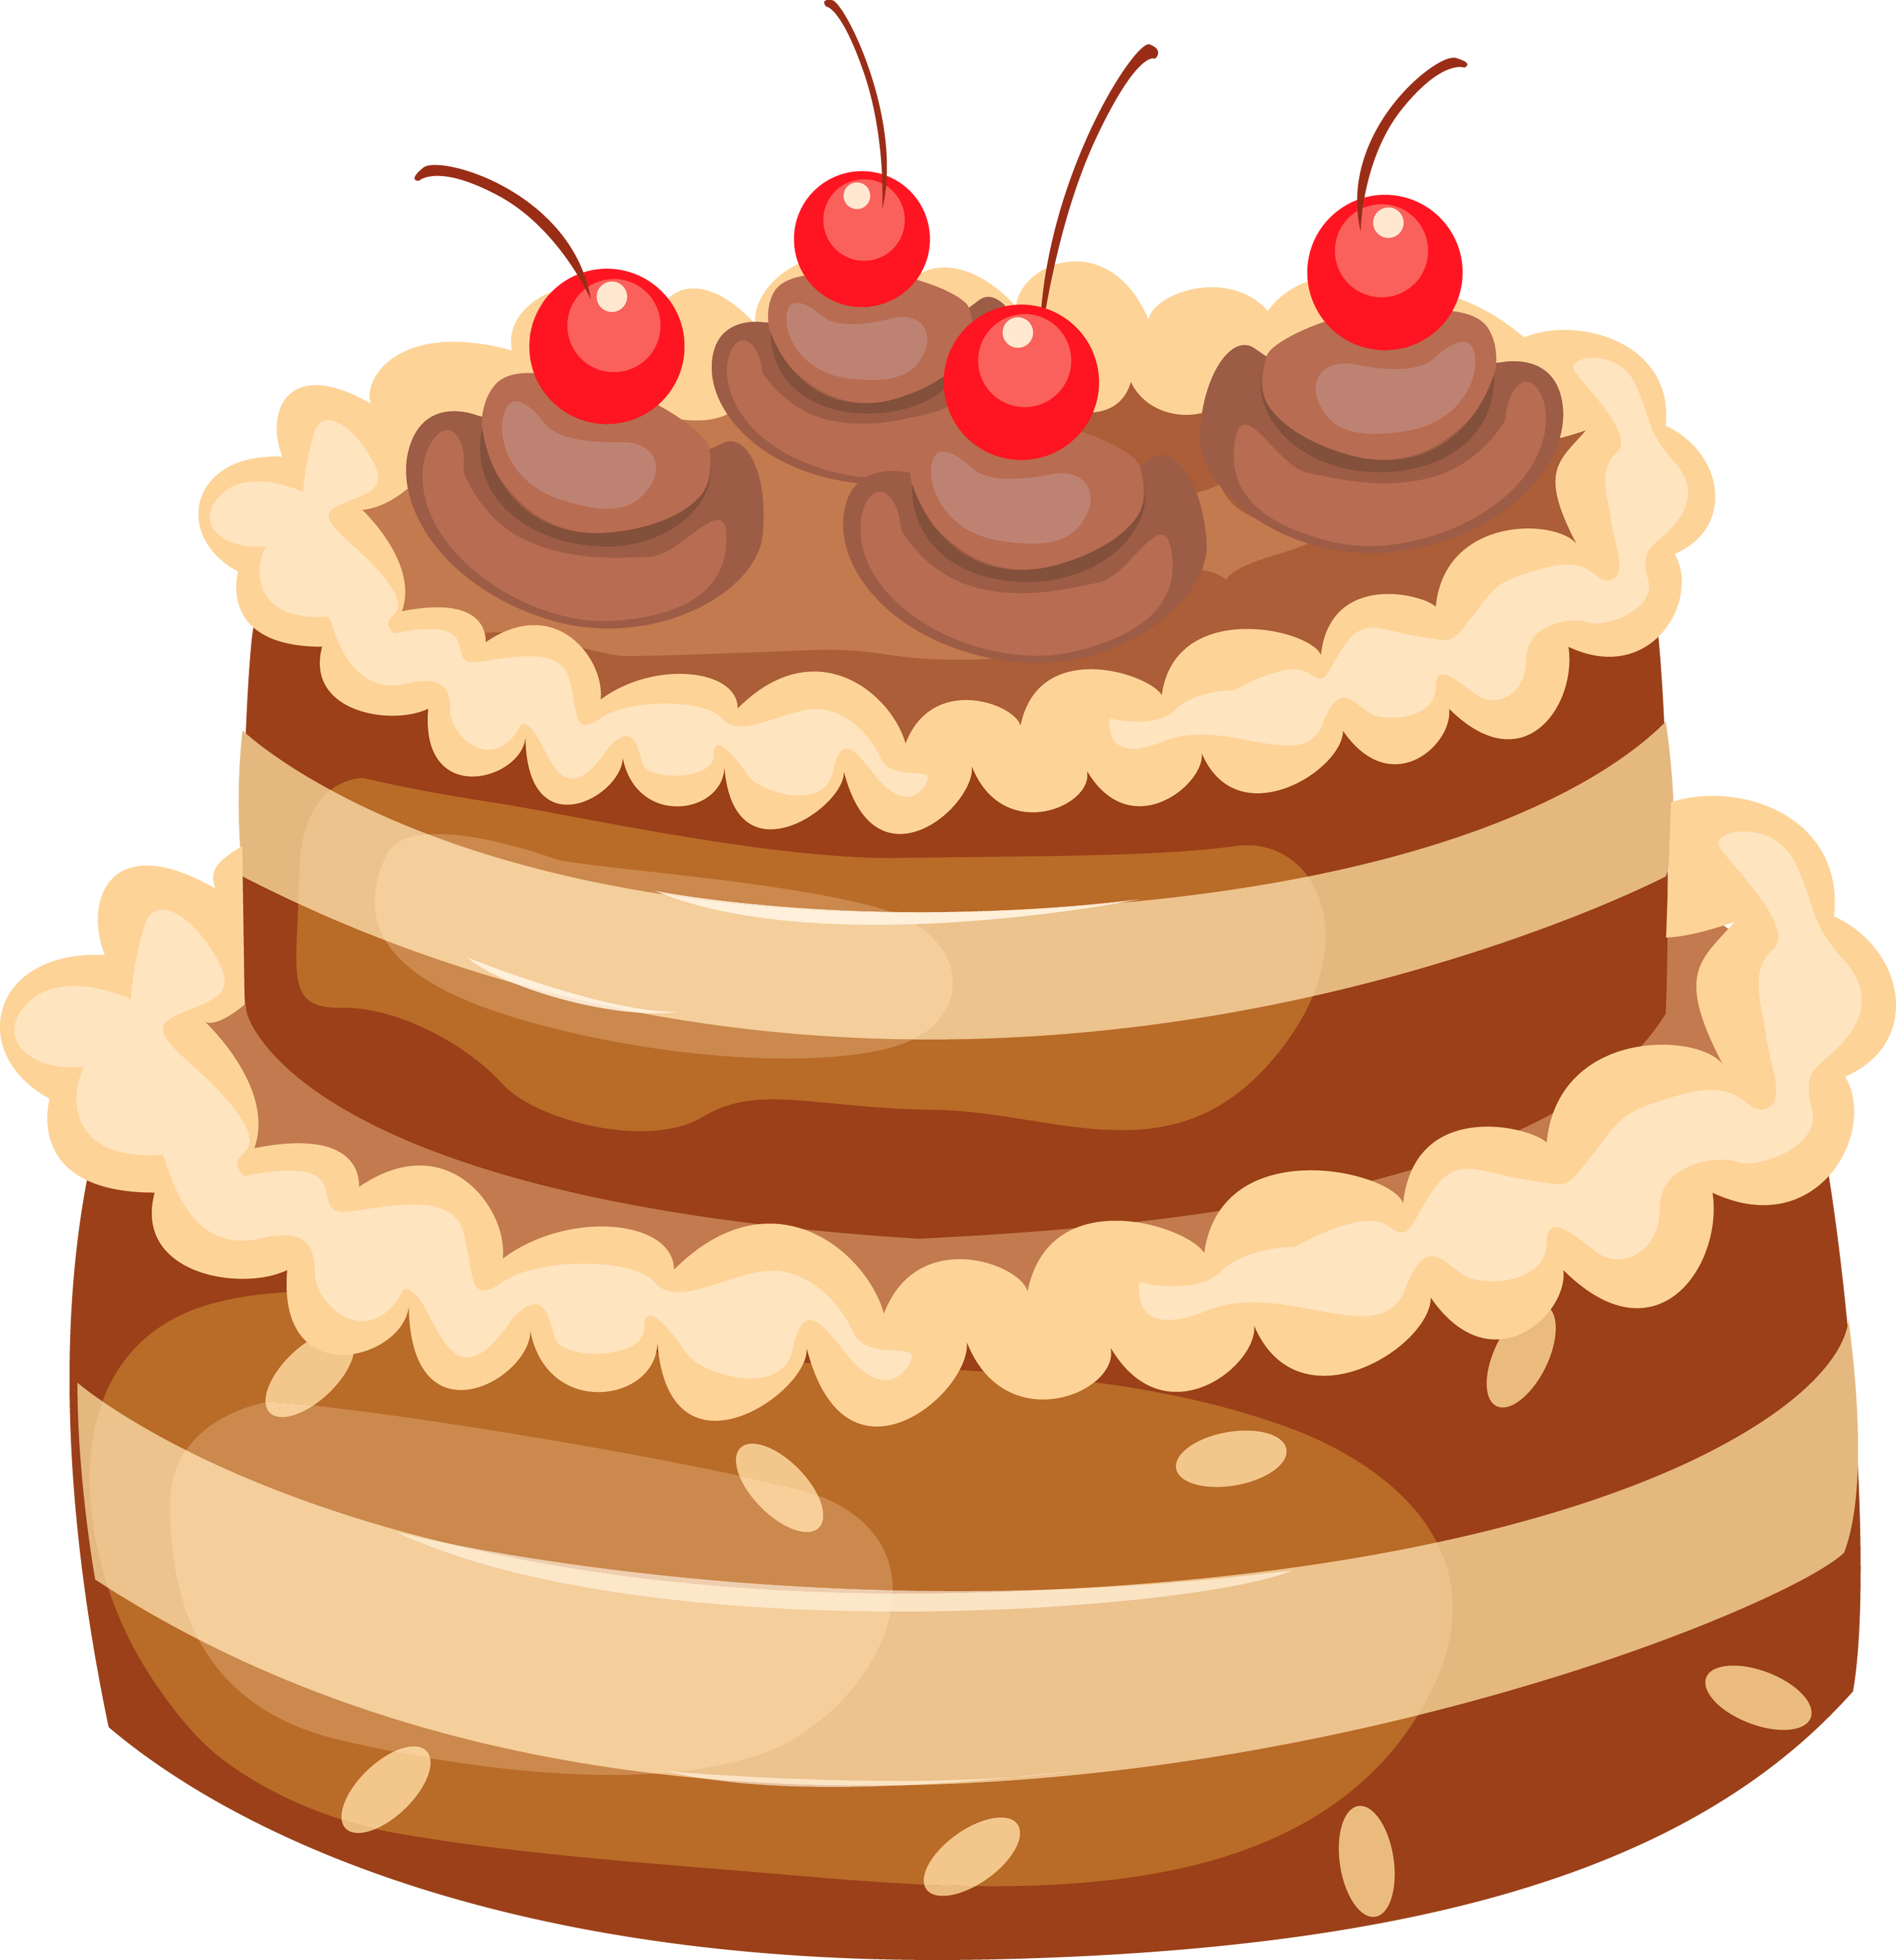 graphic transparent stock Beach clipart cake. Chocolate with cherries png.